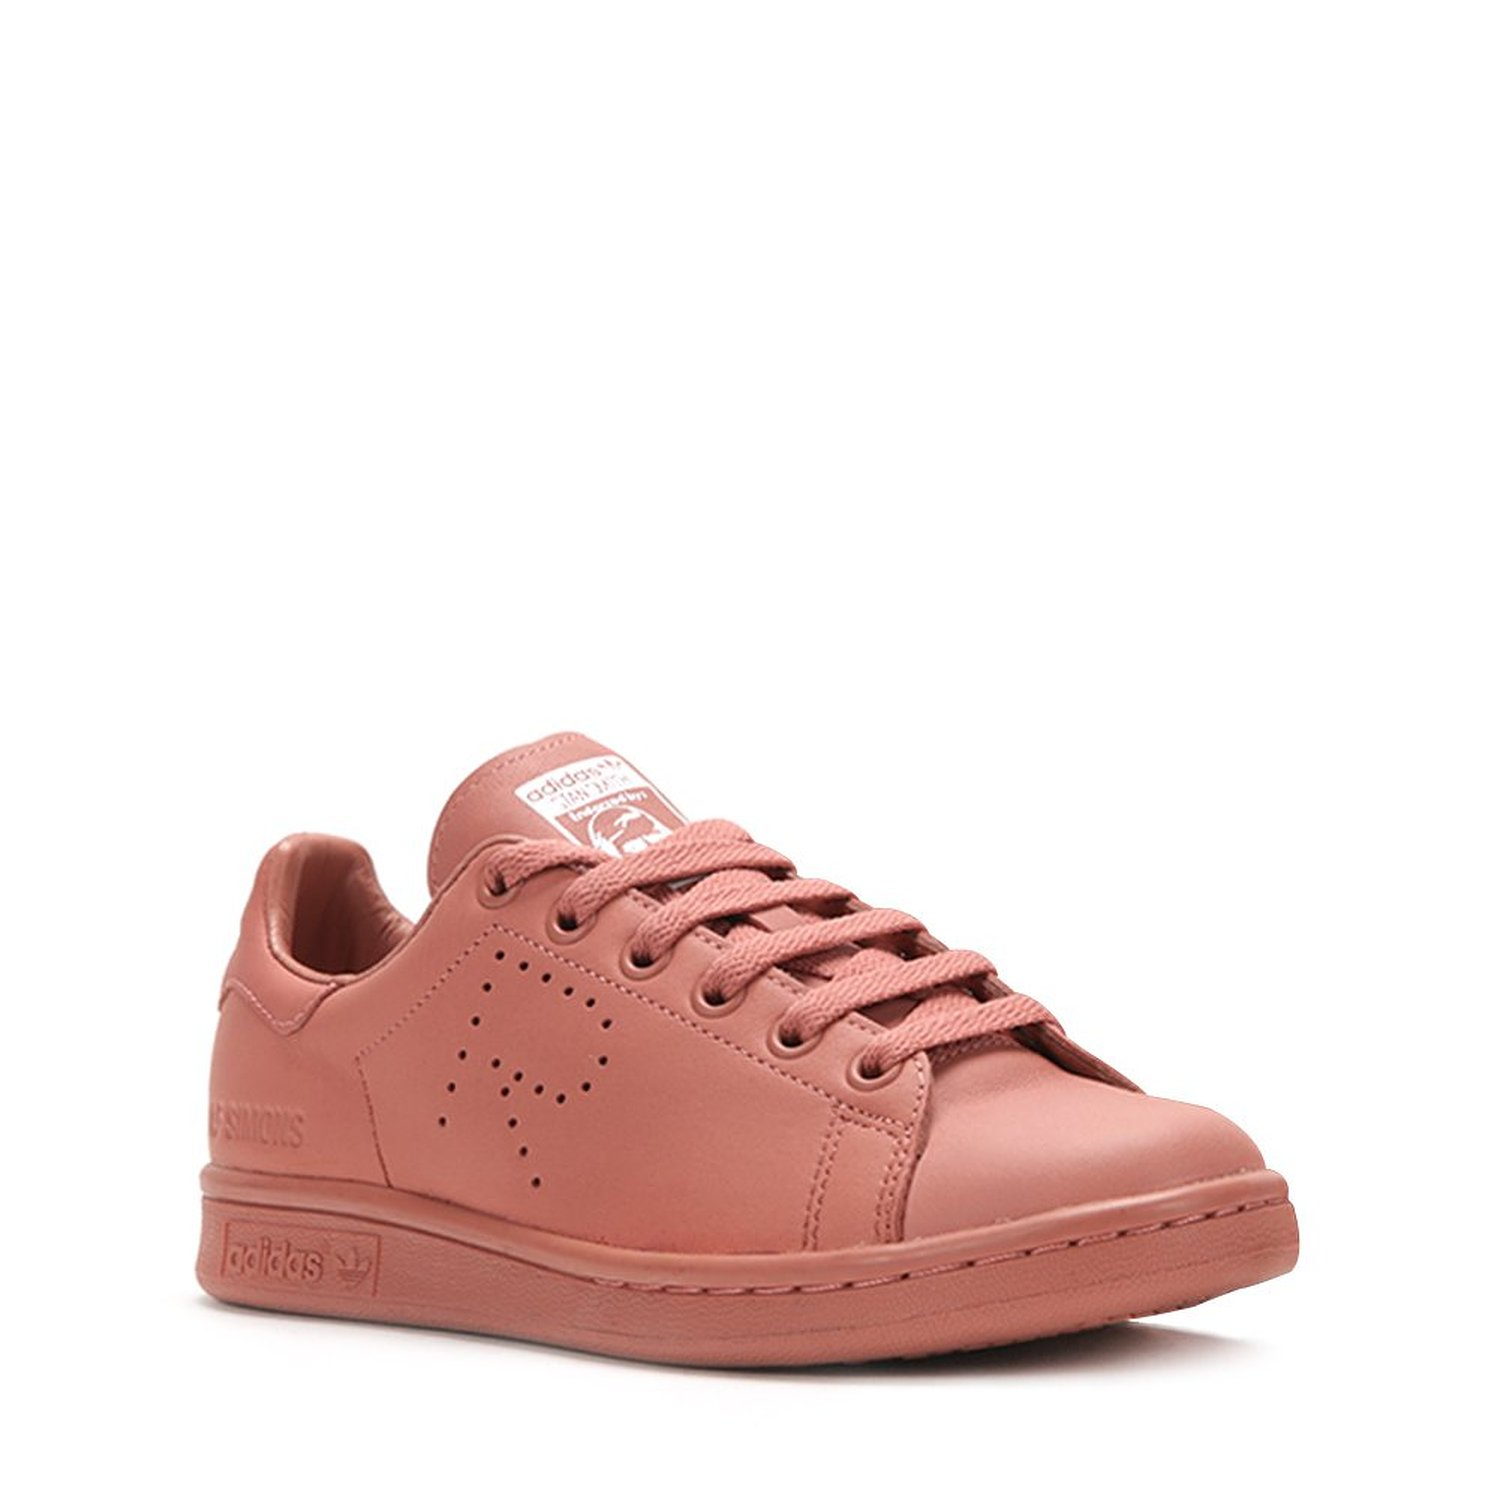 best website f423e 08f64 Amazon.com | Adidas X Raf Simons Stan Smith Sneakers AQ2646 Ash Pink SZ UK  4 / US 4.5 | Fashion Sneakers